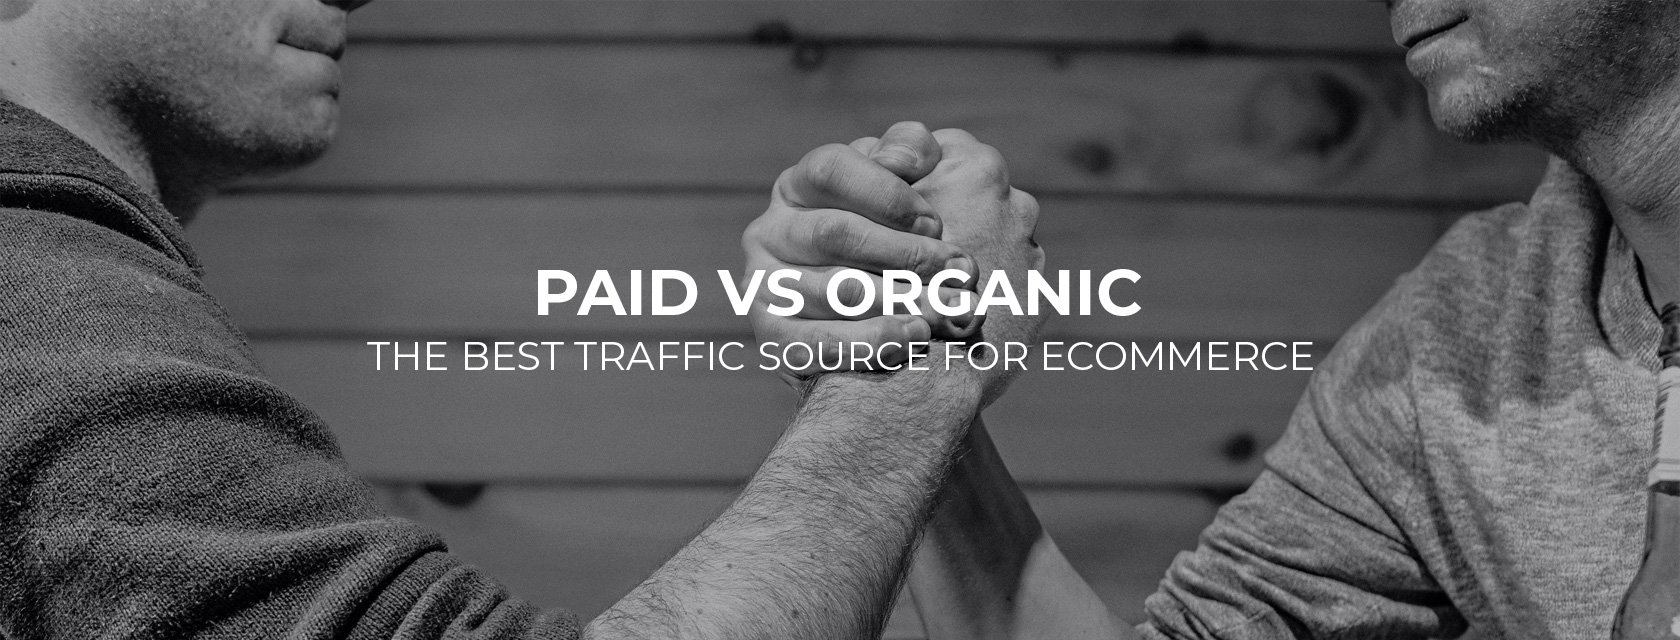 Paid vs Organic Search 2021: Best Traffic Source for Ecommerce